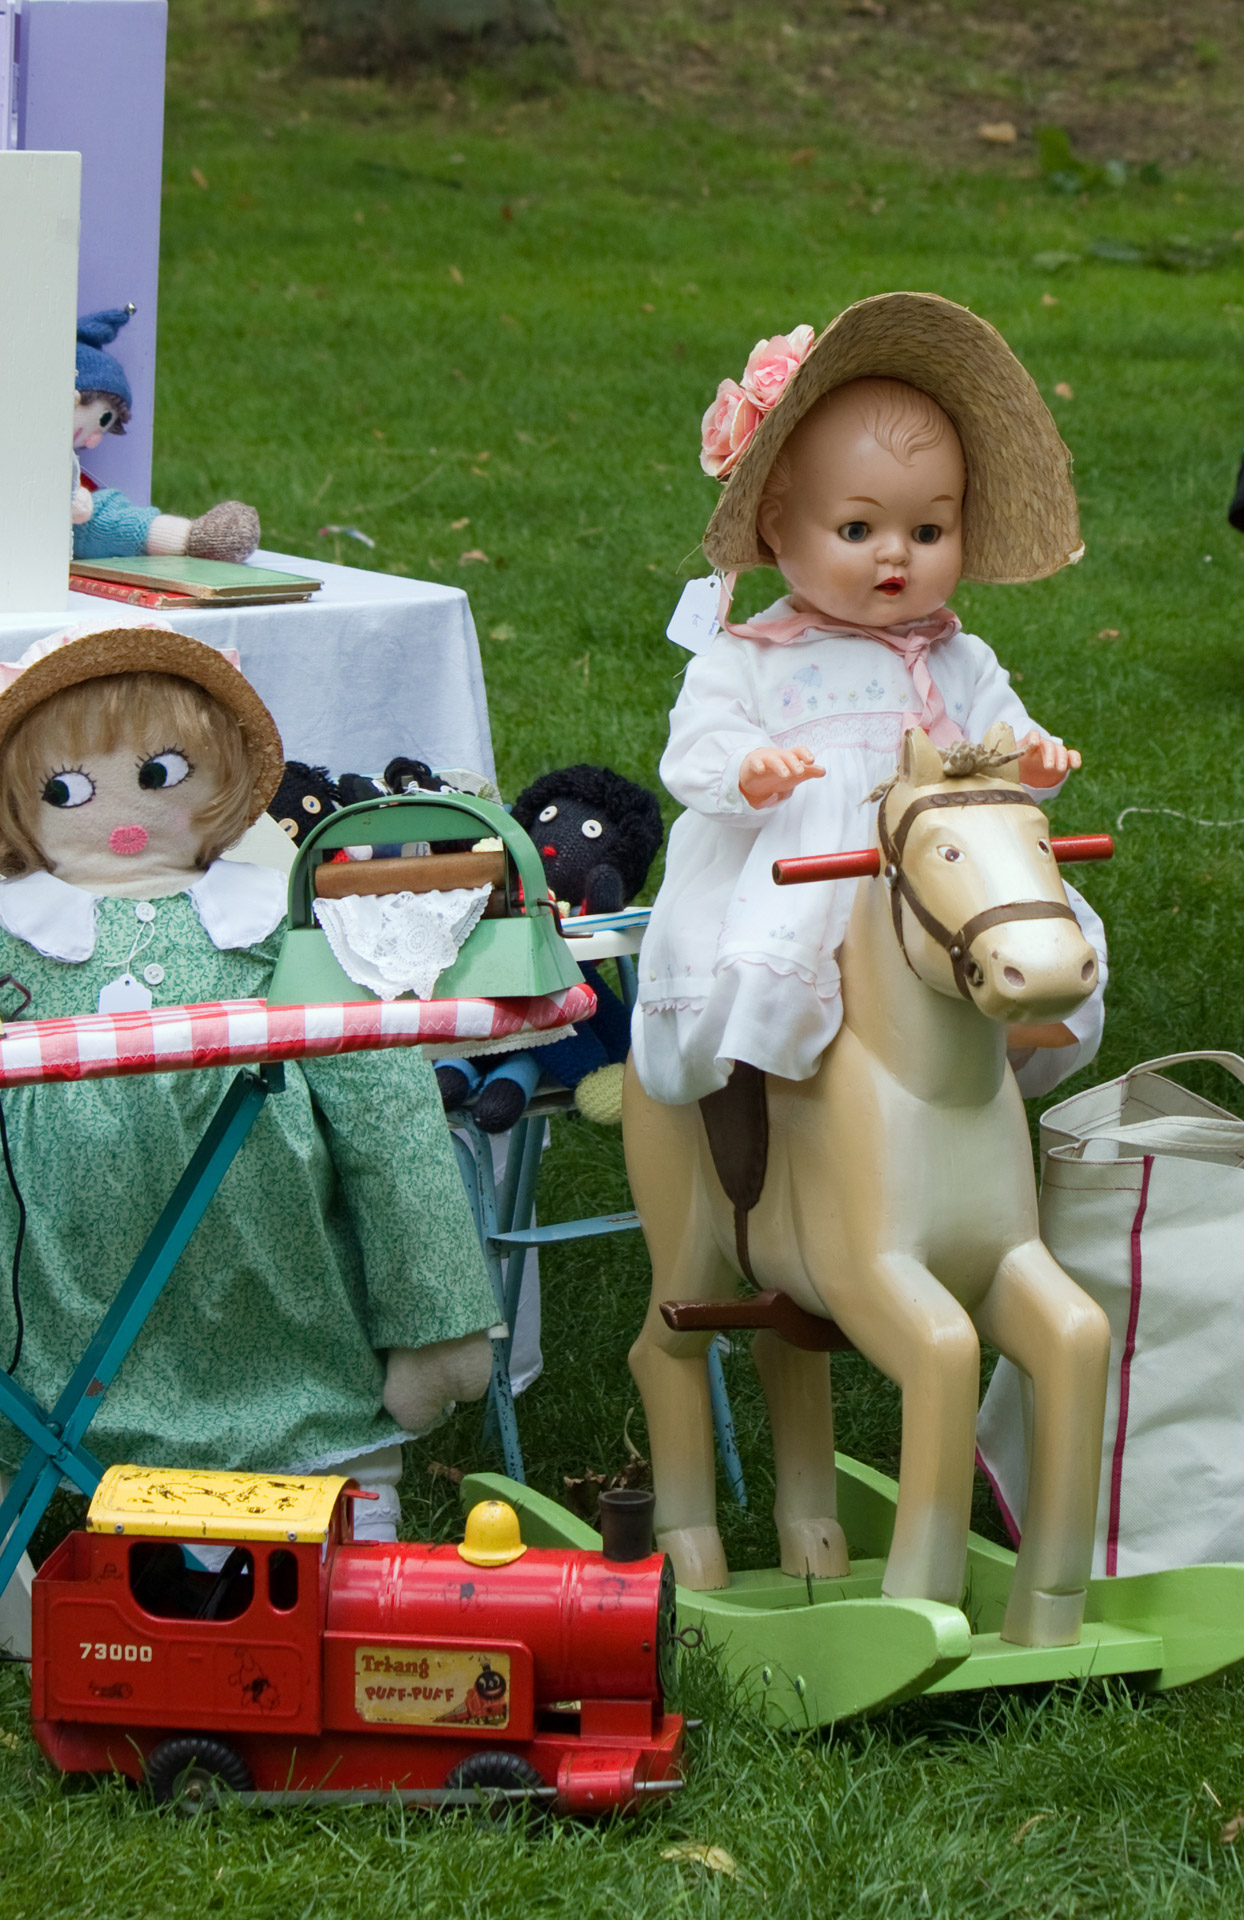 Doll Stroller Vintage Vintage Toys Free Stock Photo Public Domain Pictures